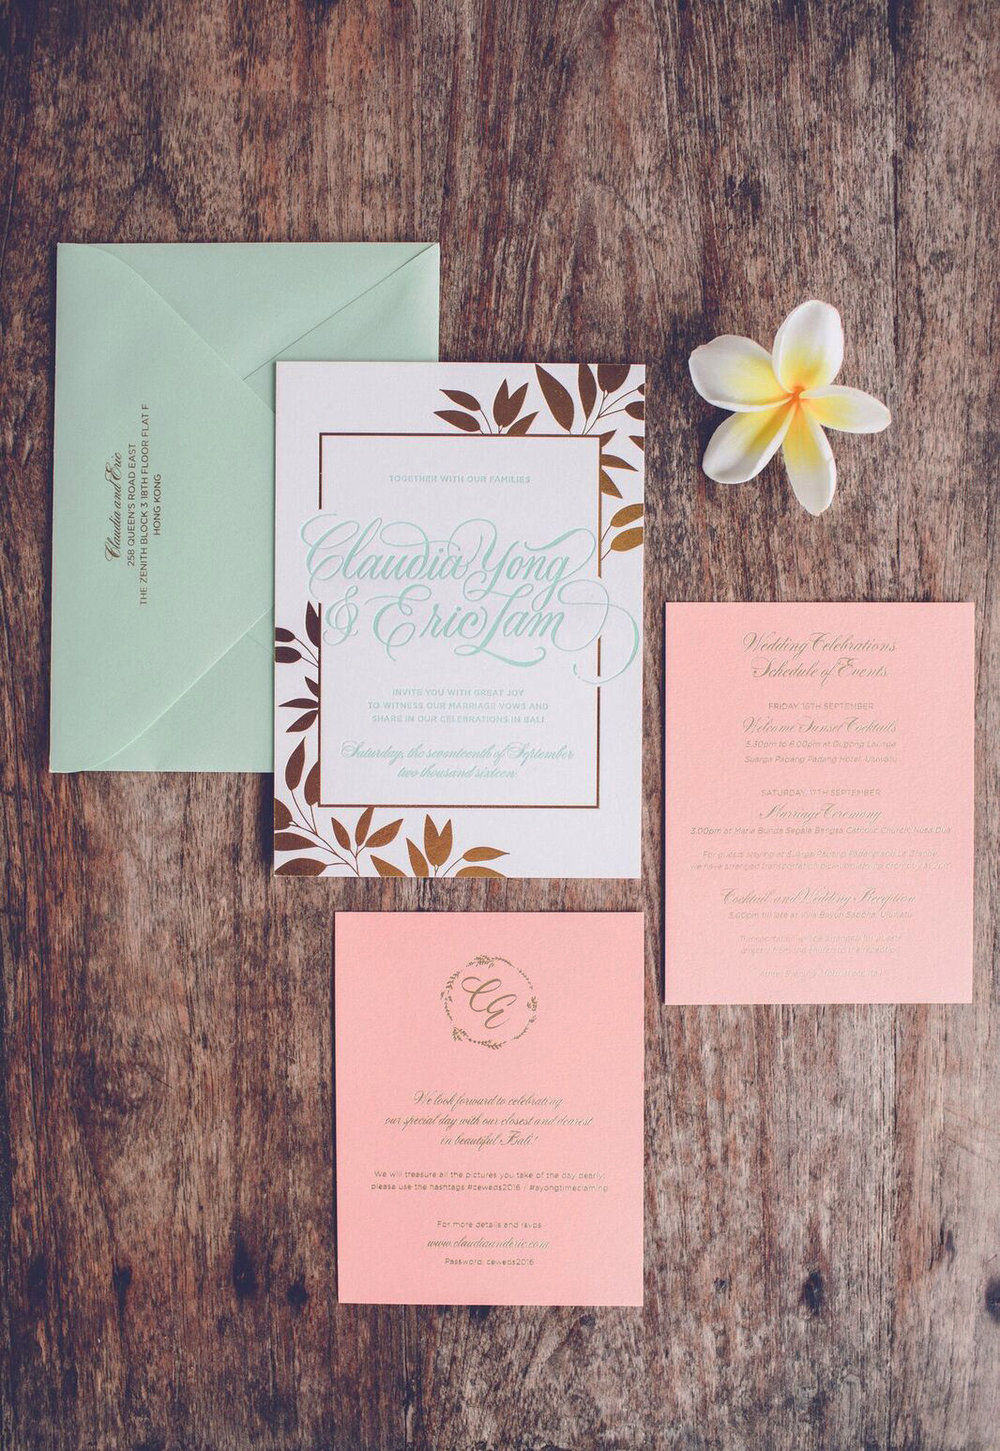 Bali wedding invitations and hand-lettered calligraphy signage | www.chavelli.com